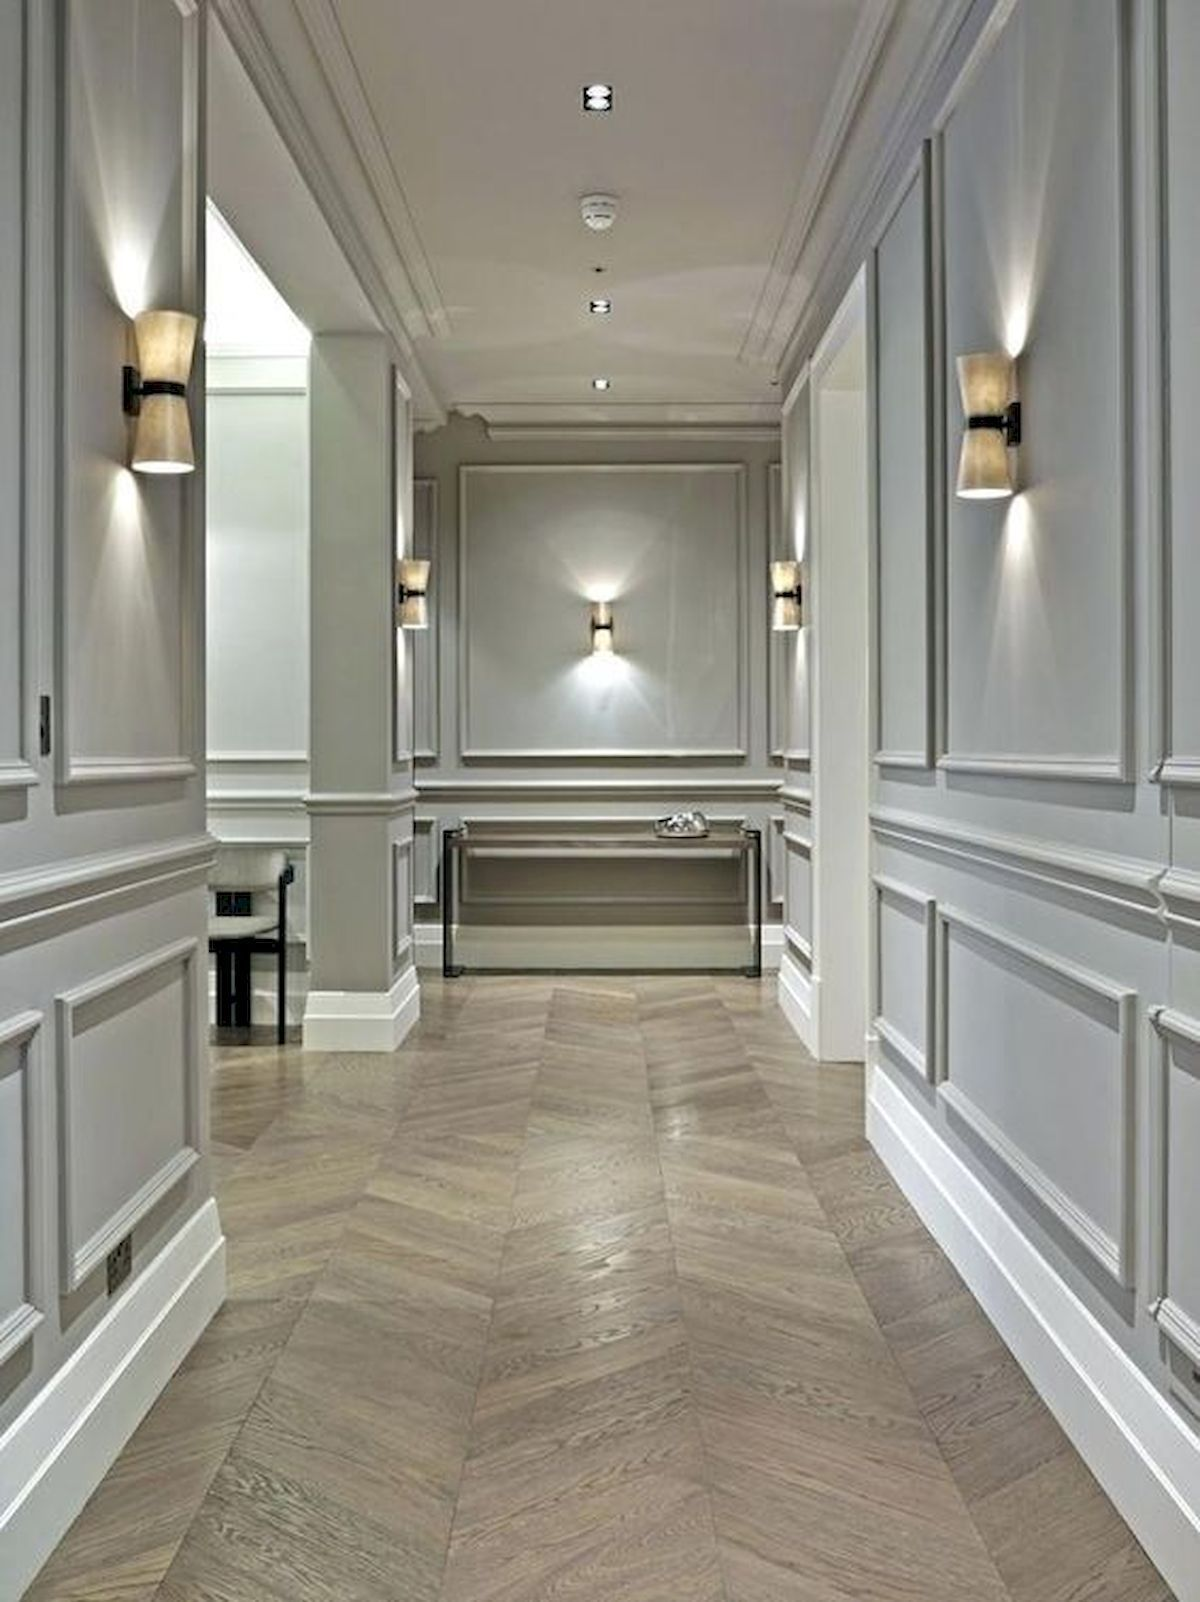 70 Farmhouse Wall Paneling Design Ideas For Living Room Bathroom Kitchen And Bedroom Page 13 Best In 2020 Wainscoting Styles Dining Room Wainscoting House Design